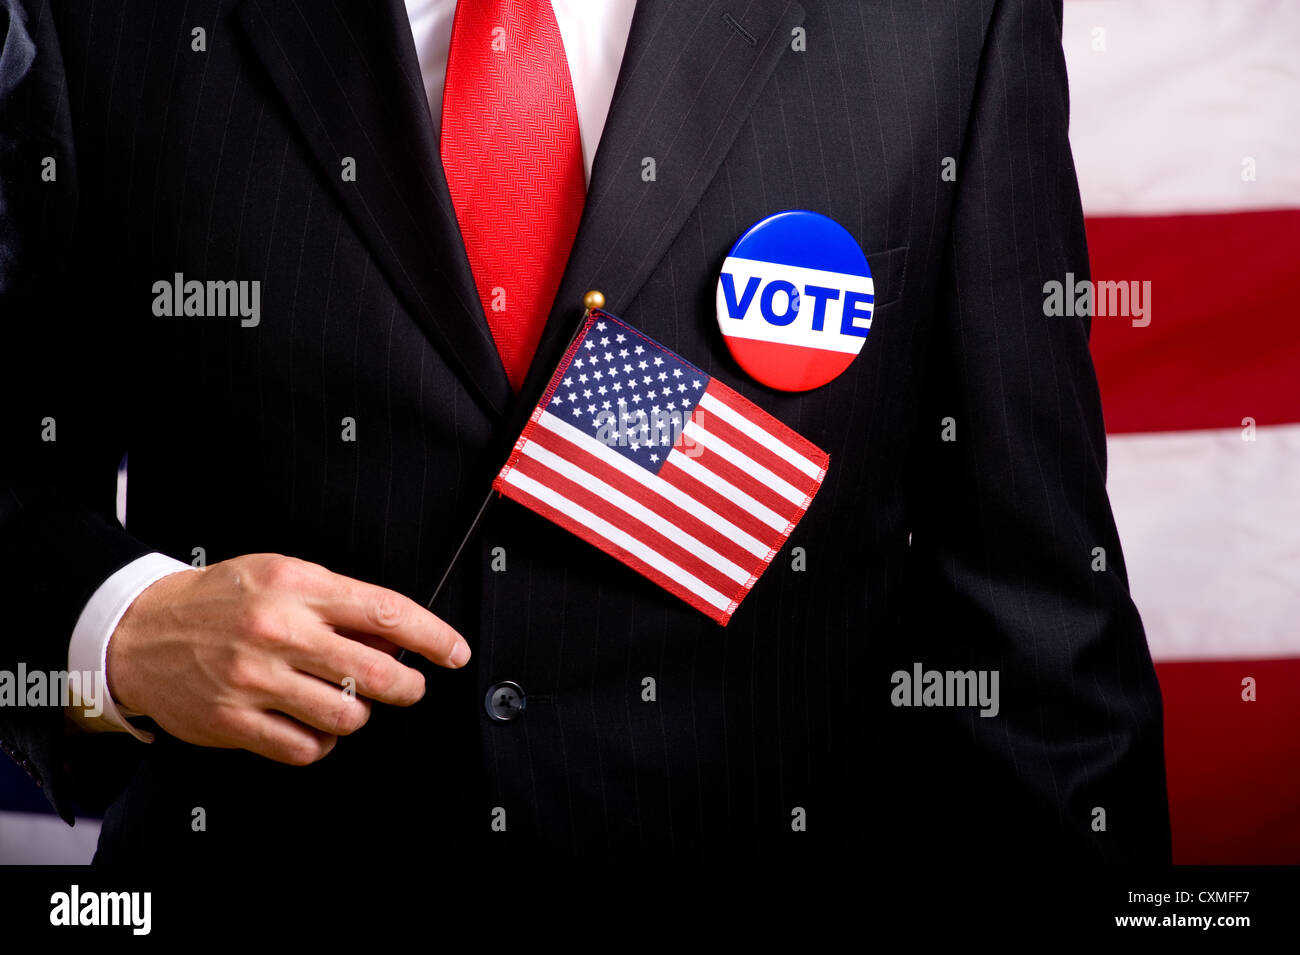 A man wearing a blue business suit and tie with a vote button and US flag. Election day background or concept Stock Photo